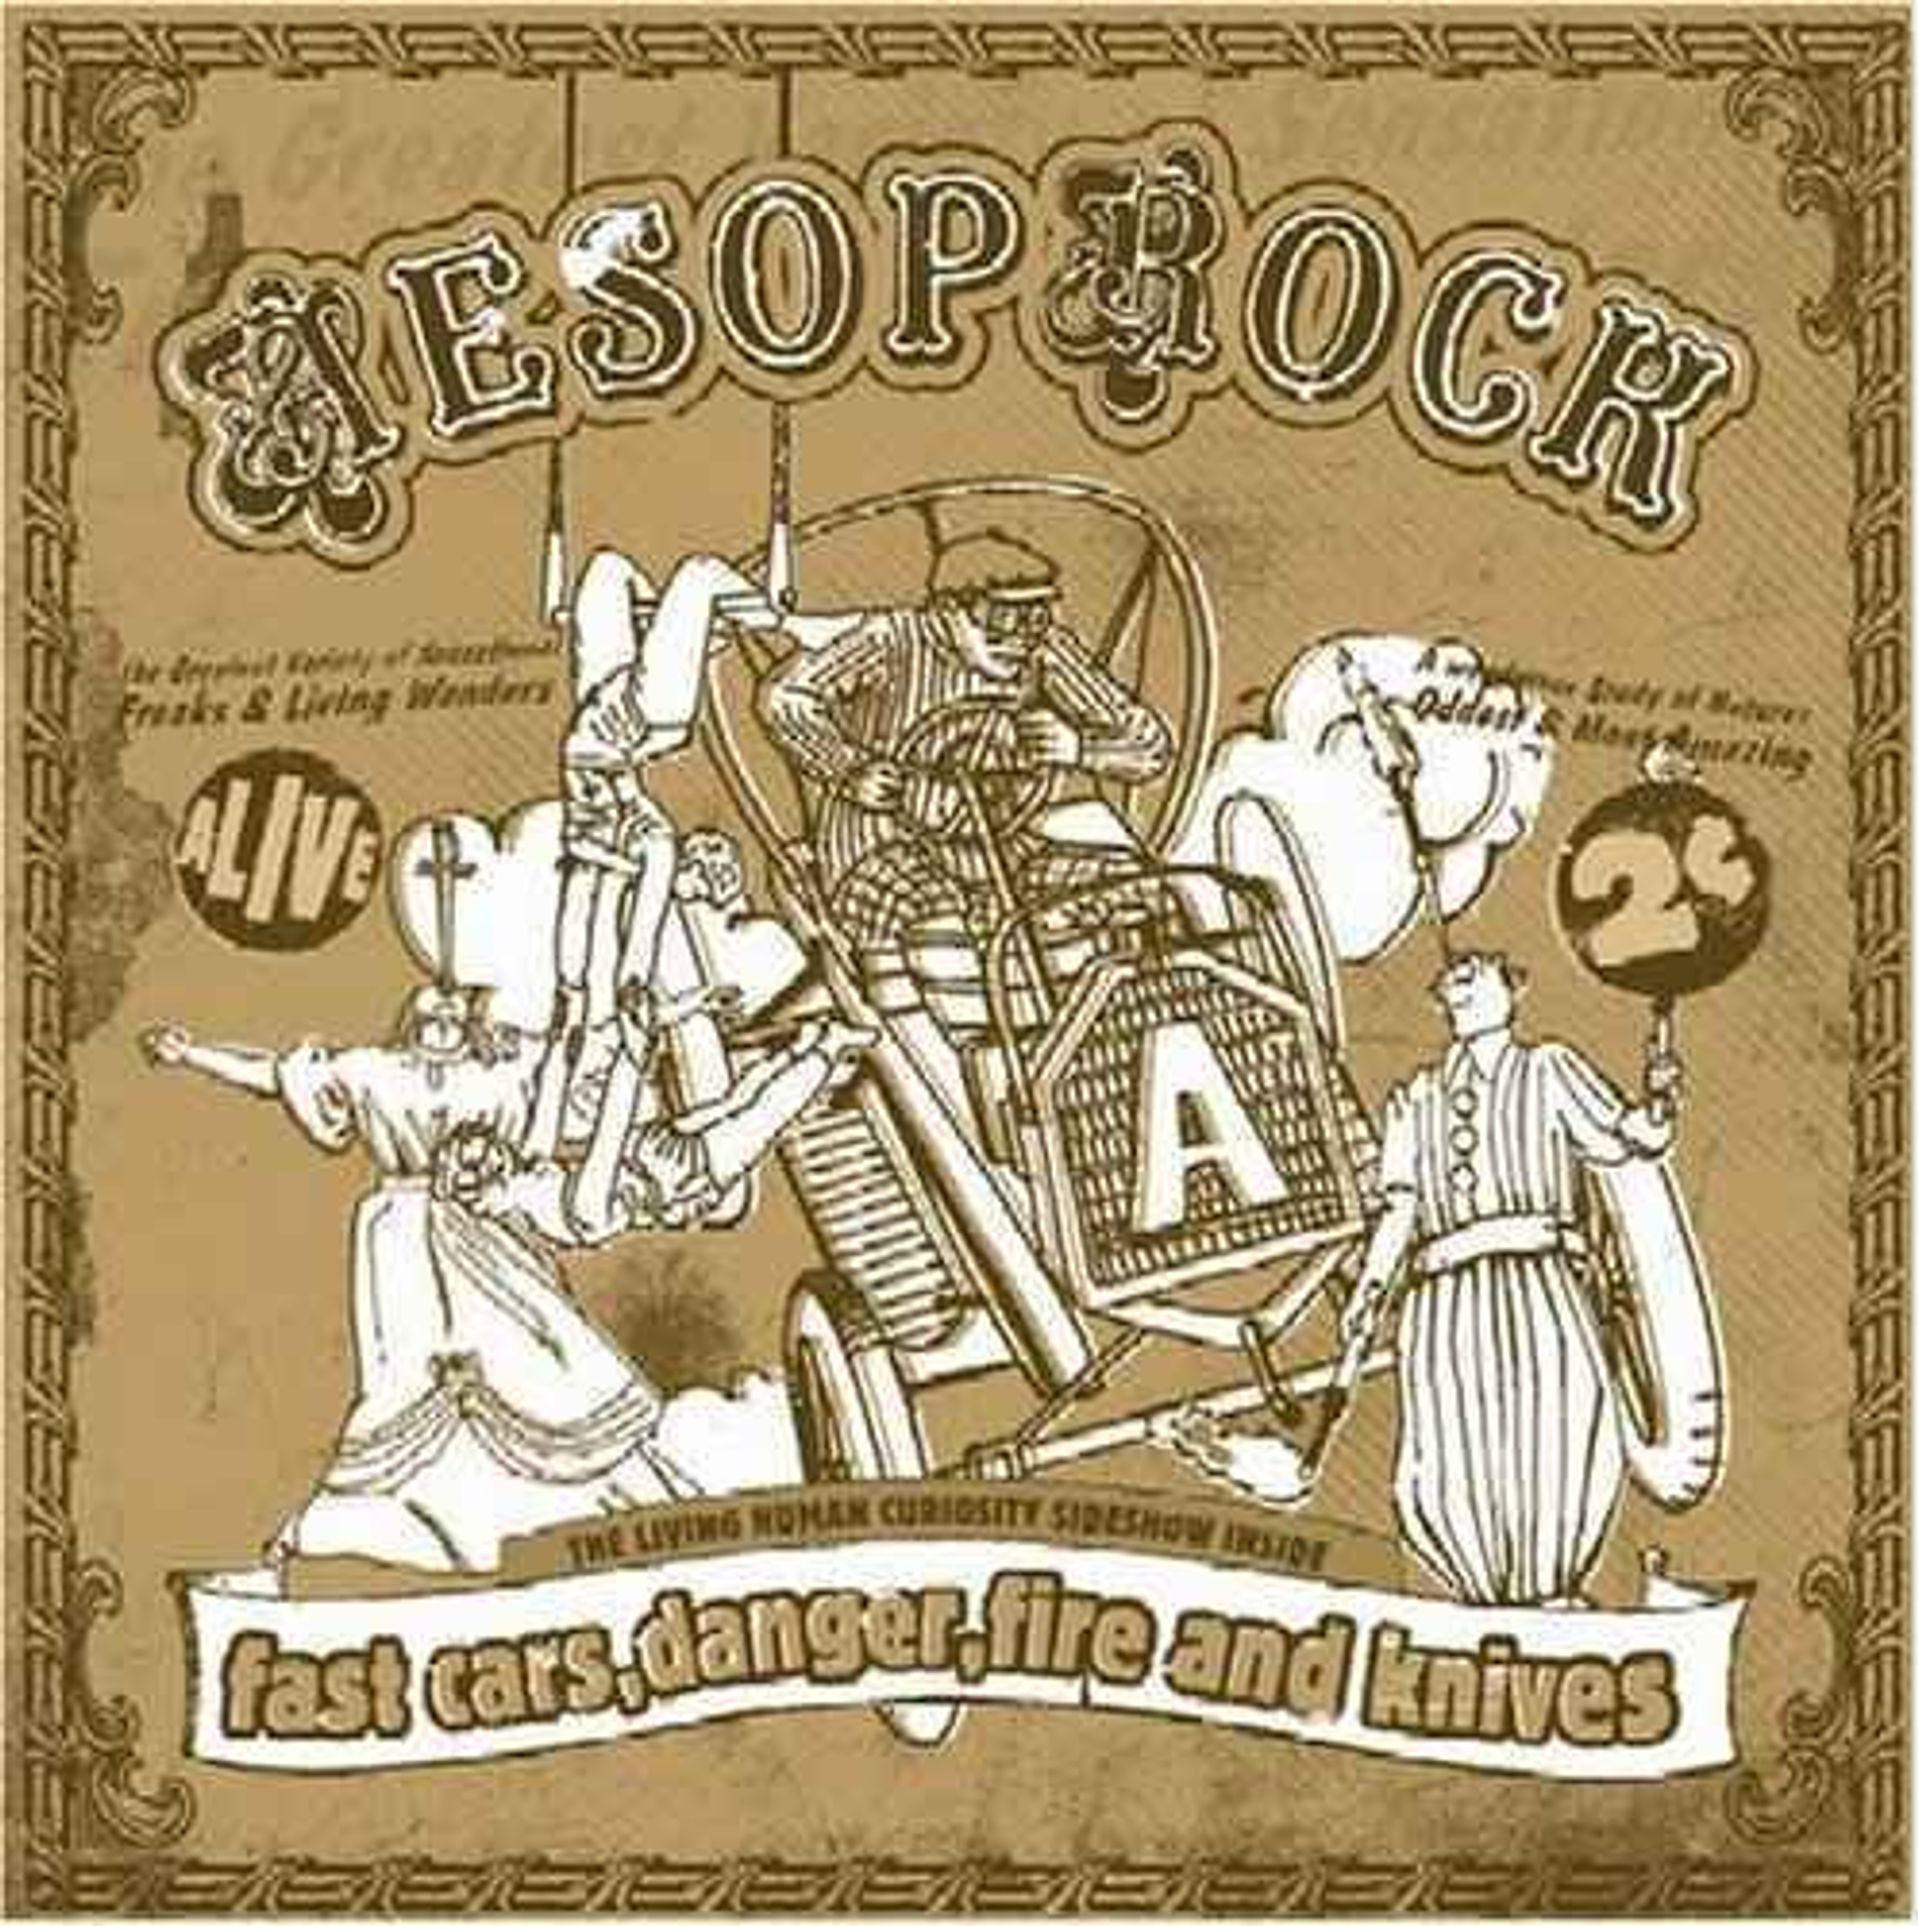 Album Title: Fast Cars, Danger, Fire, and Knives by: Aesop Rock